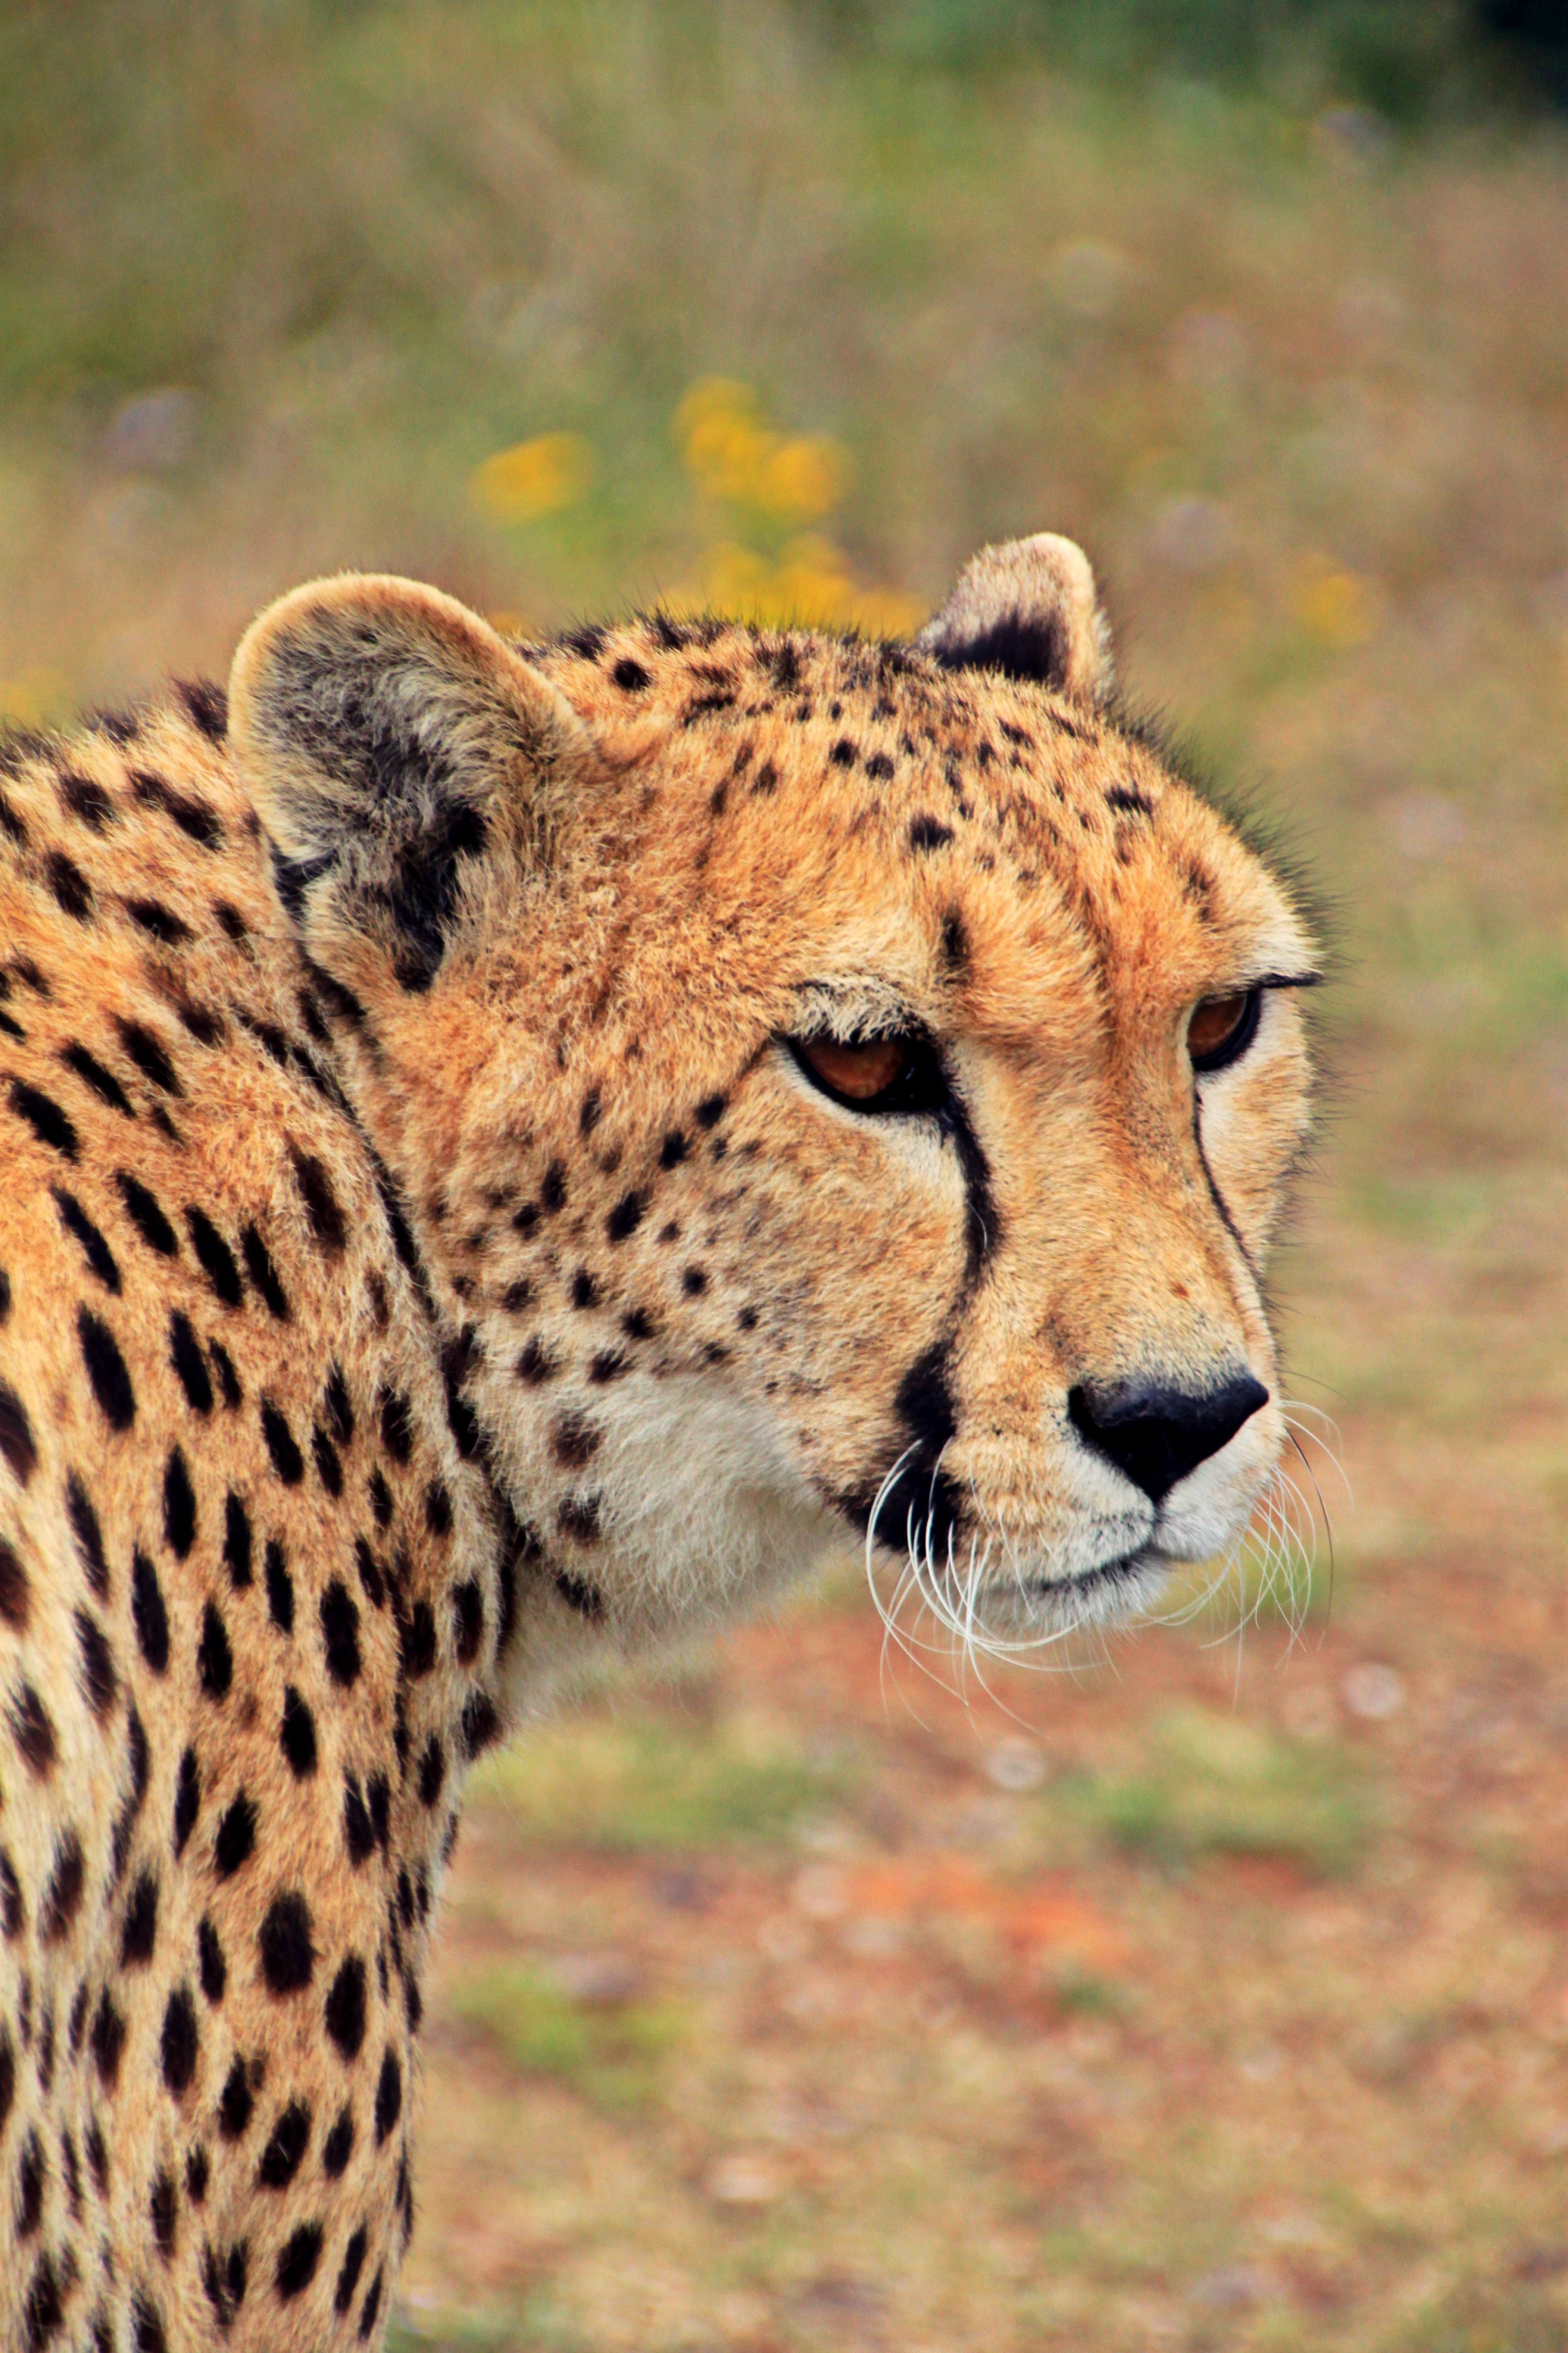 Jaguar Animal Wallpaper Cheetah Against Blurred Background 183 Free Stock Photo